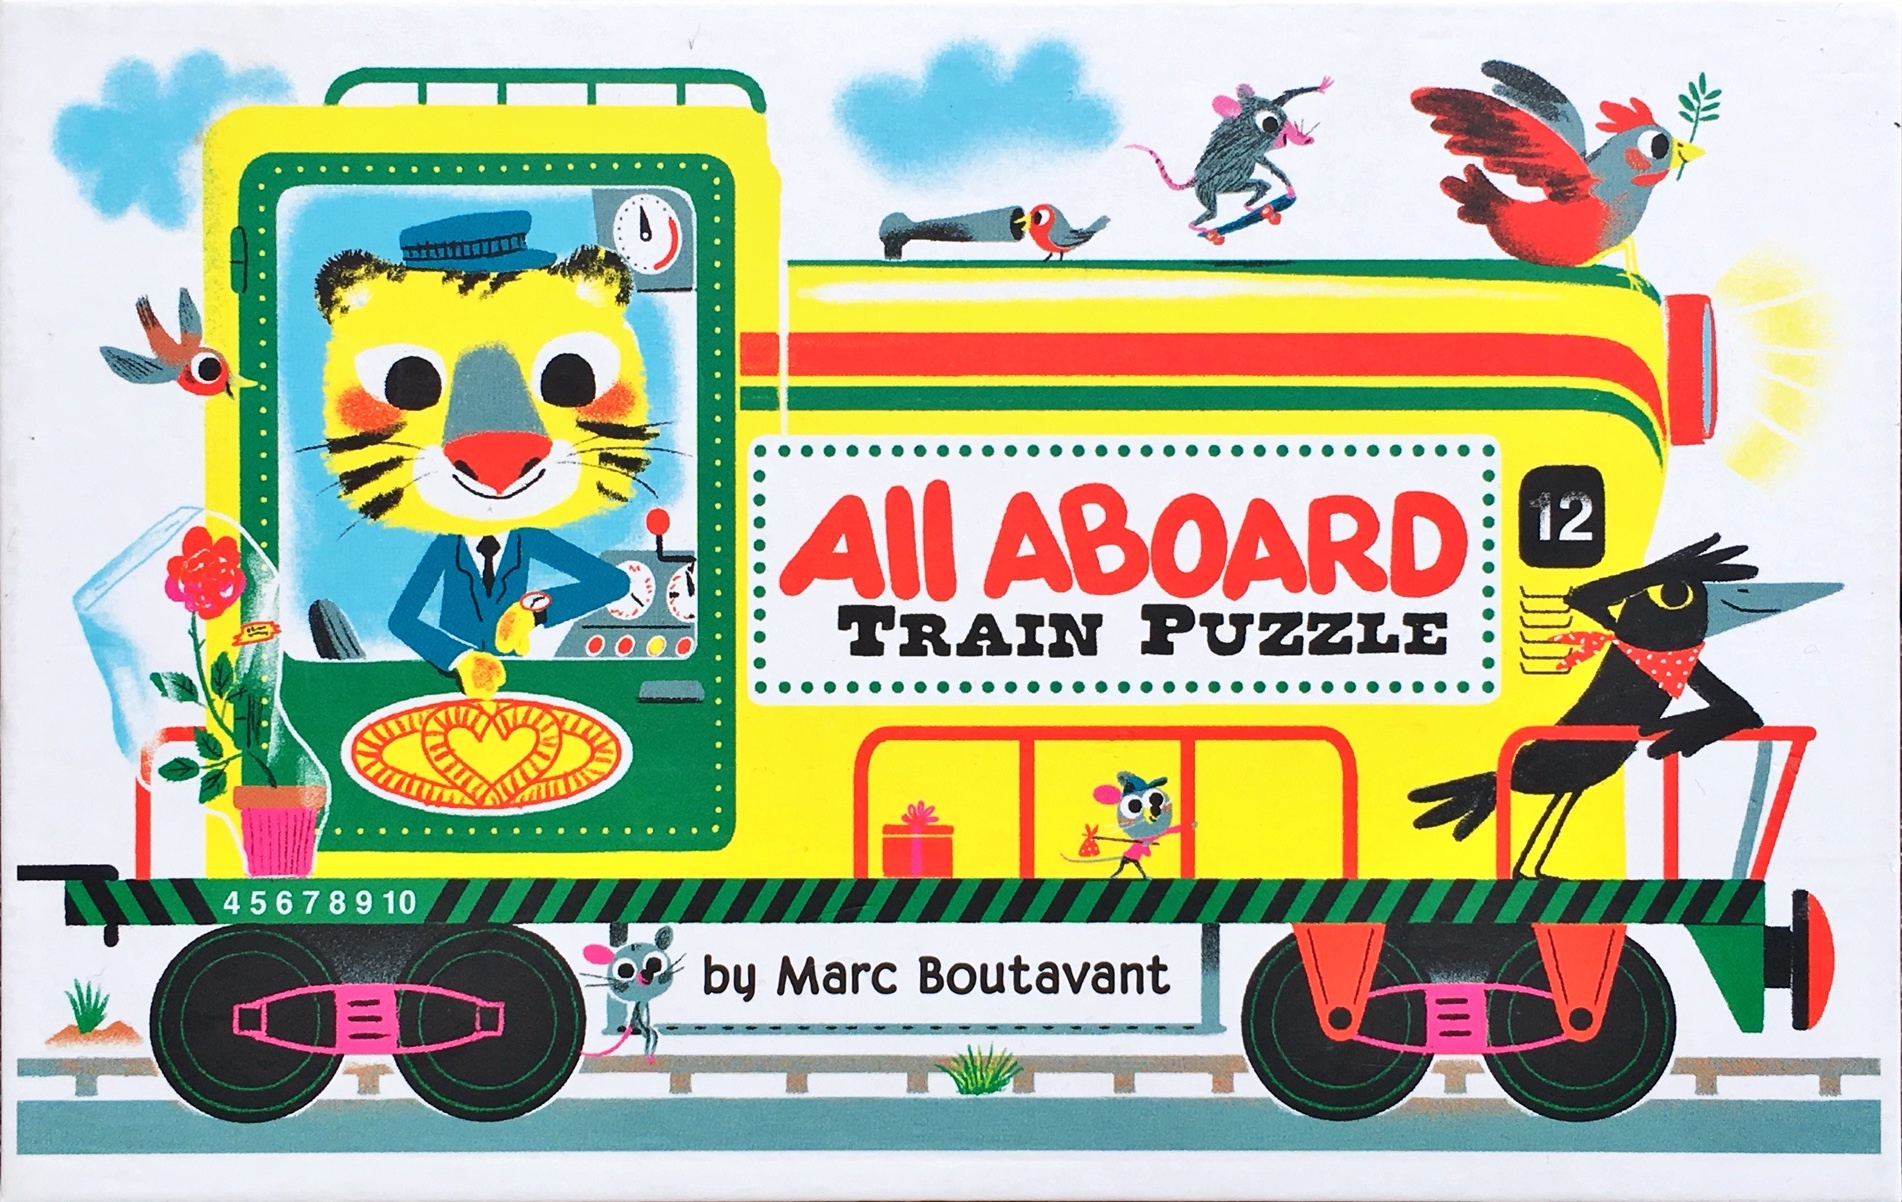 All aboard train puzzle box cover